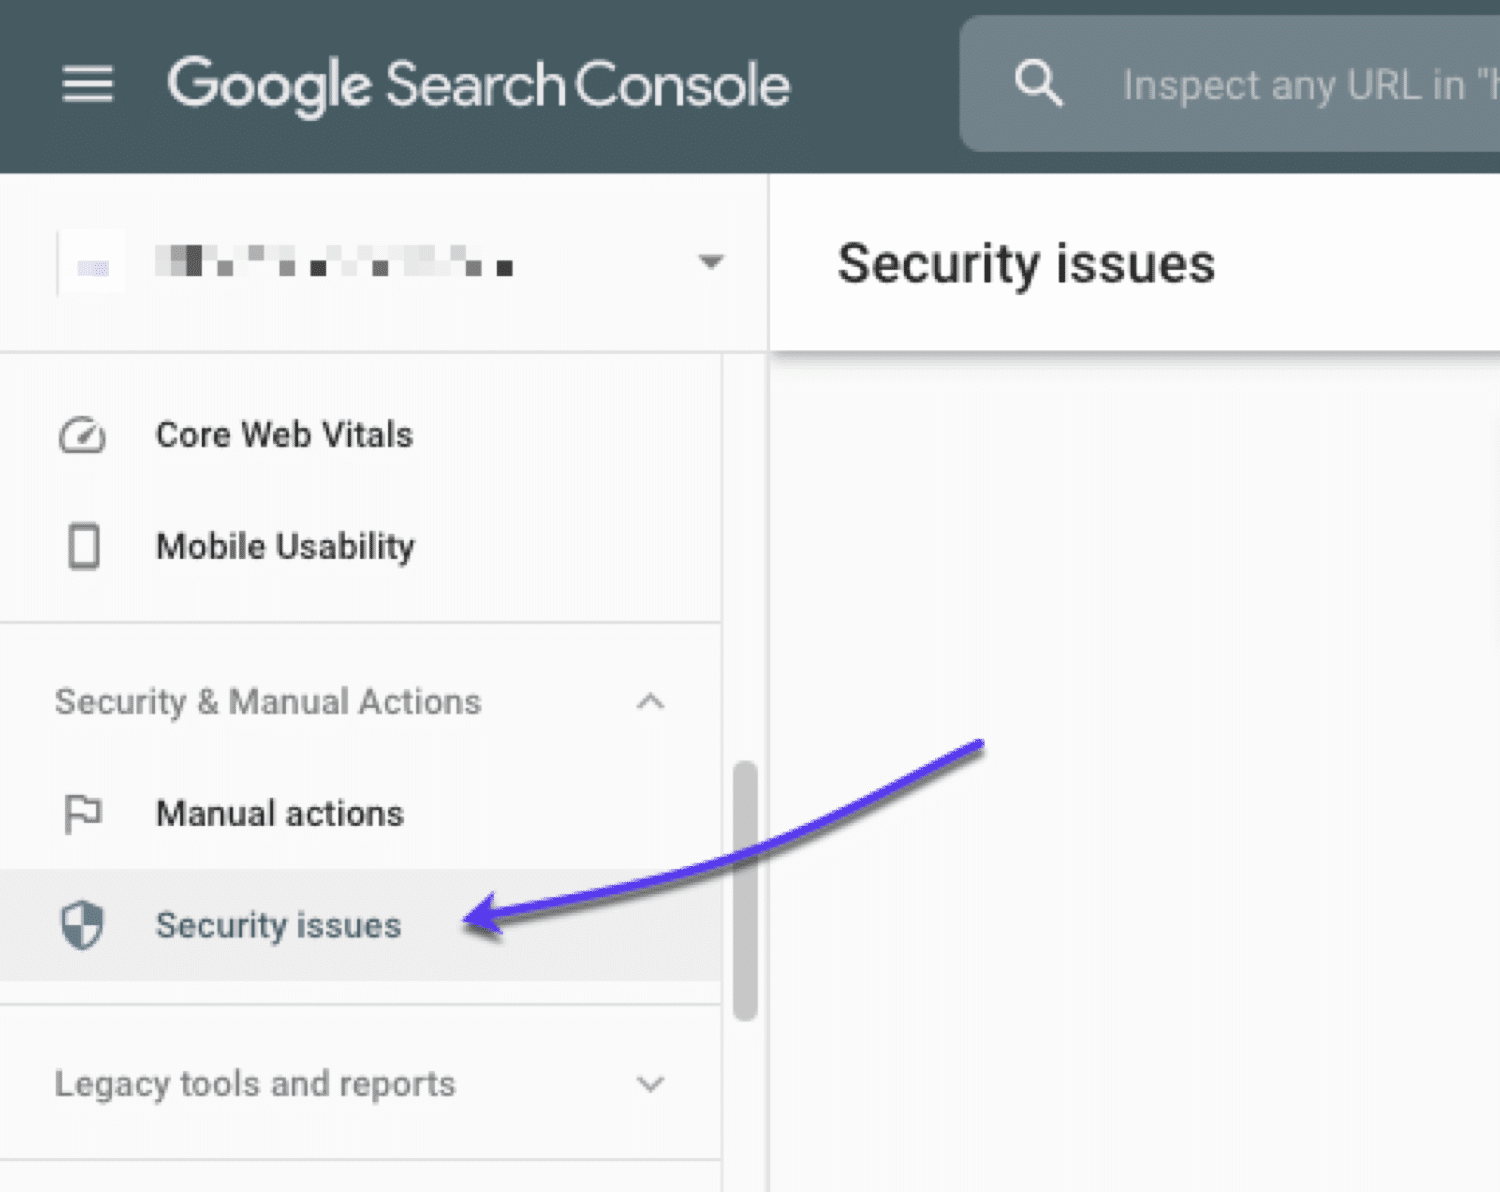 security issues option